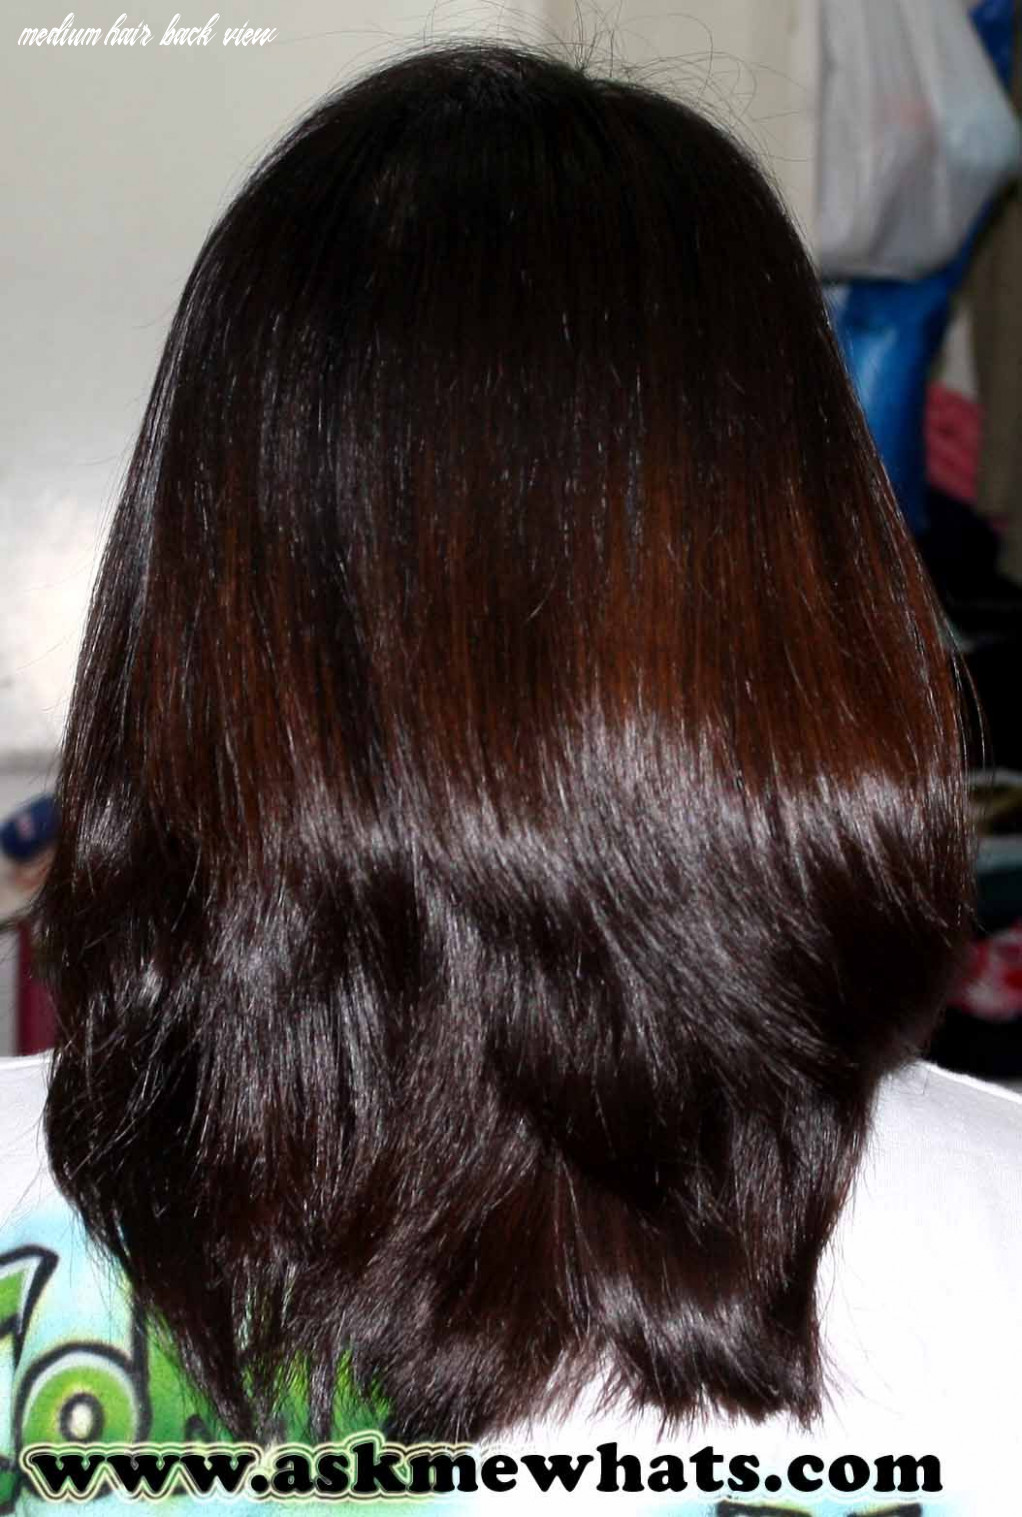 Image result for medium hair back view indian | mittellange